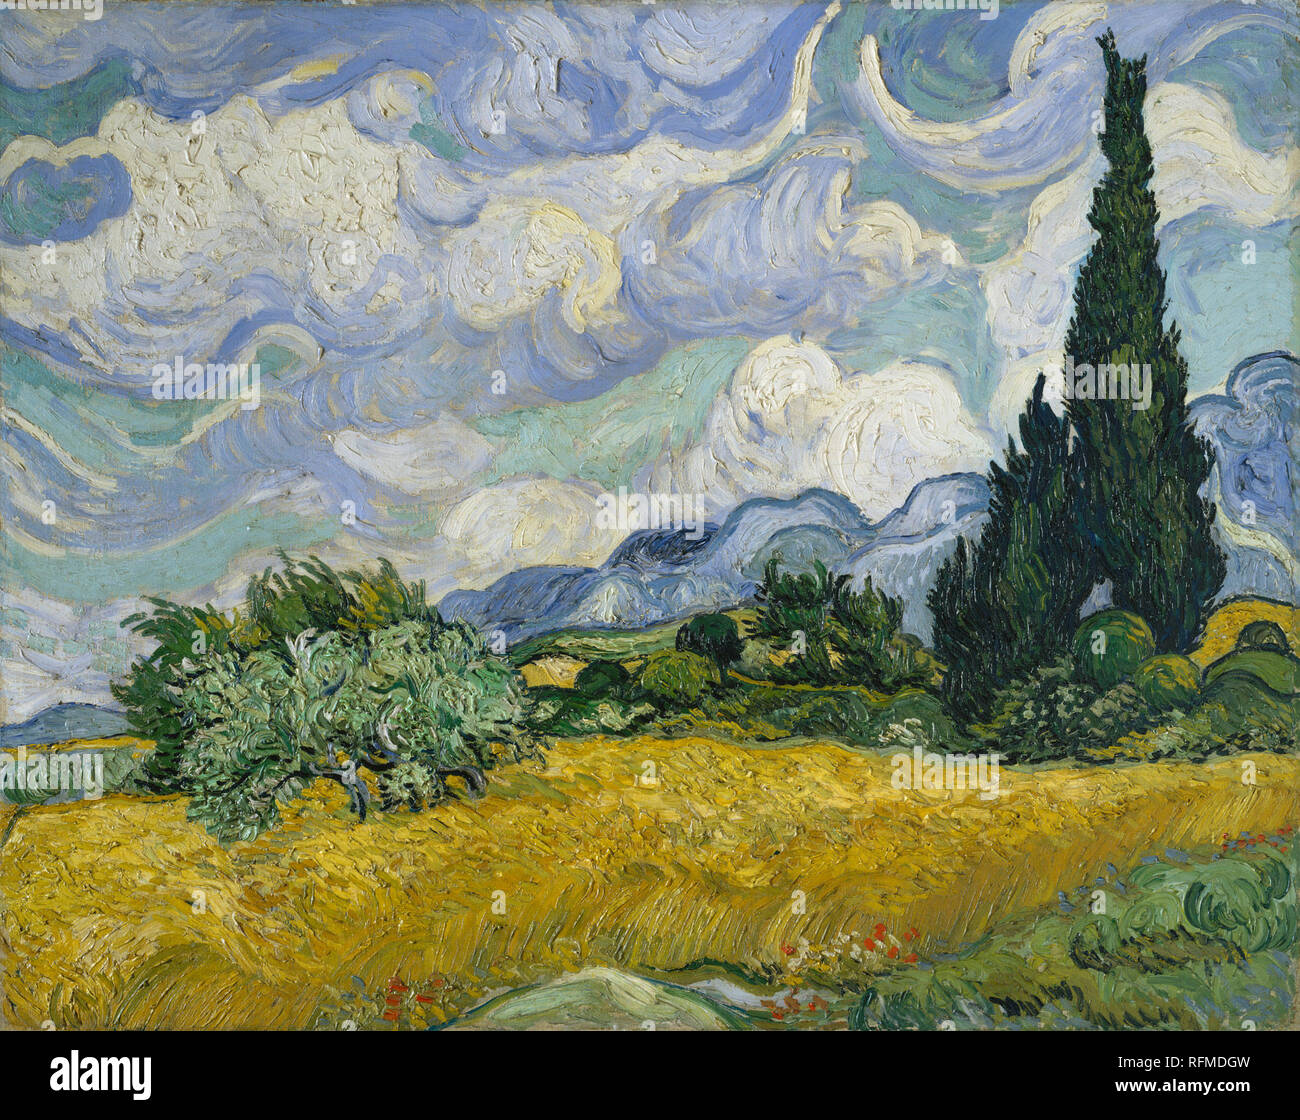 Working Title/Artist: Wheat Field with Cypresses Department: European Paintings Culture/Period/Location:  HB/TOA Date Code: 10 Working Date: 1889 photography by mma, DT1567.tif  retouched by film and media (jnc) 8_11_08 - Stock Image